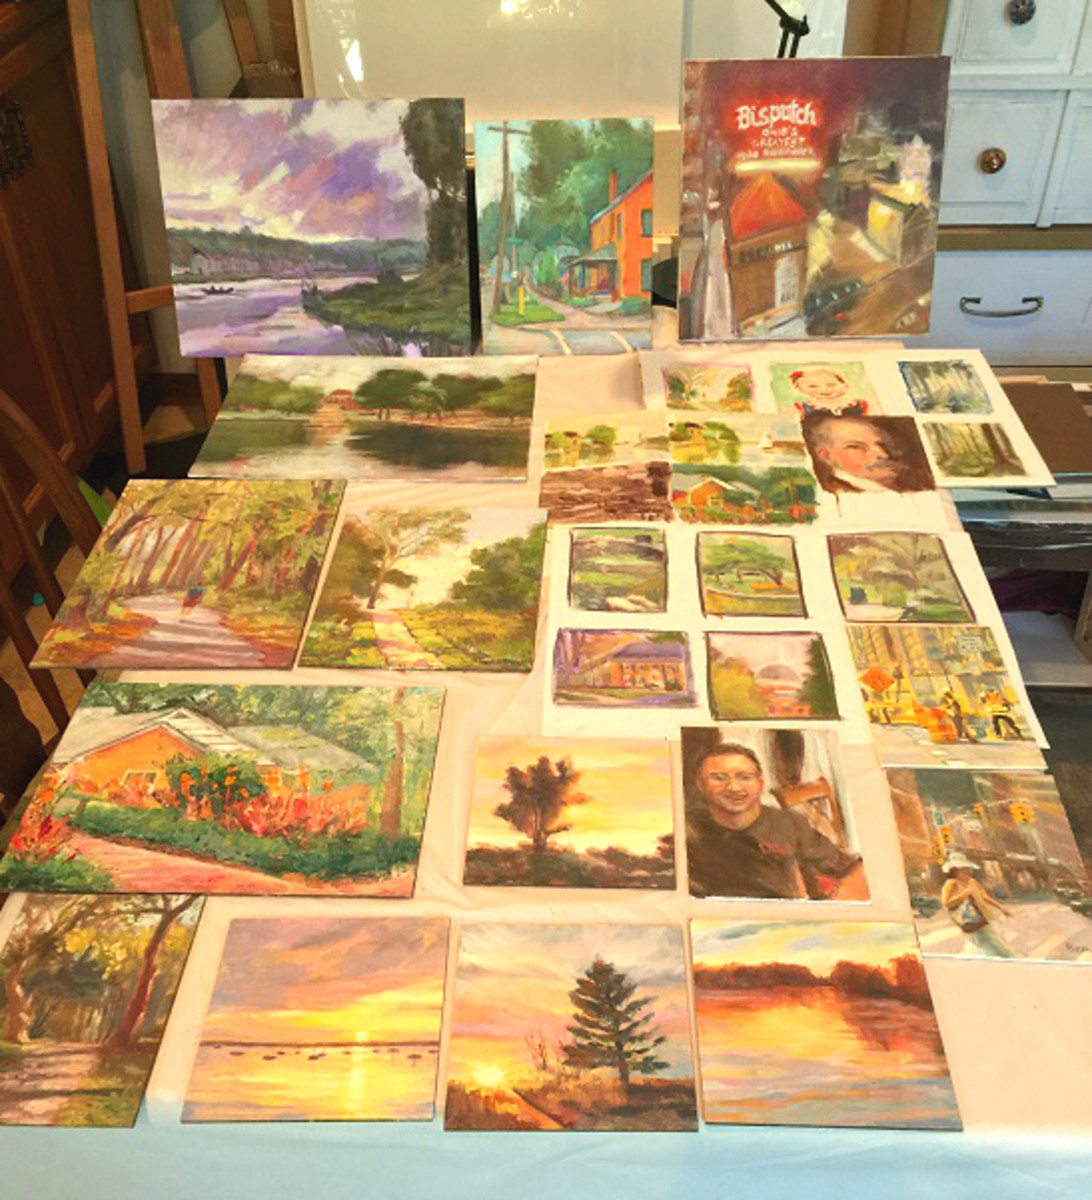 I love to participate in the 30 paintings in 30 days challenge, twice a year. These are the daily paintings completed in September 2017.